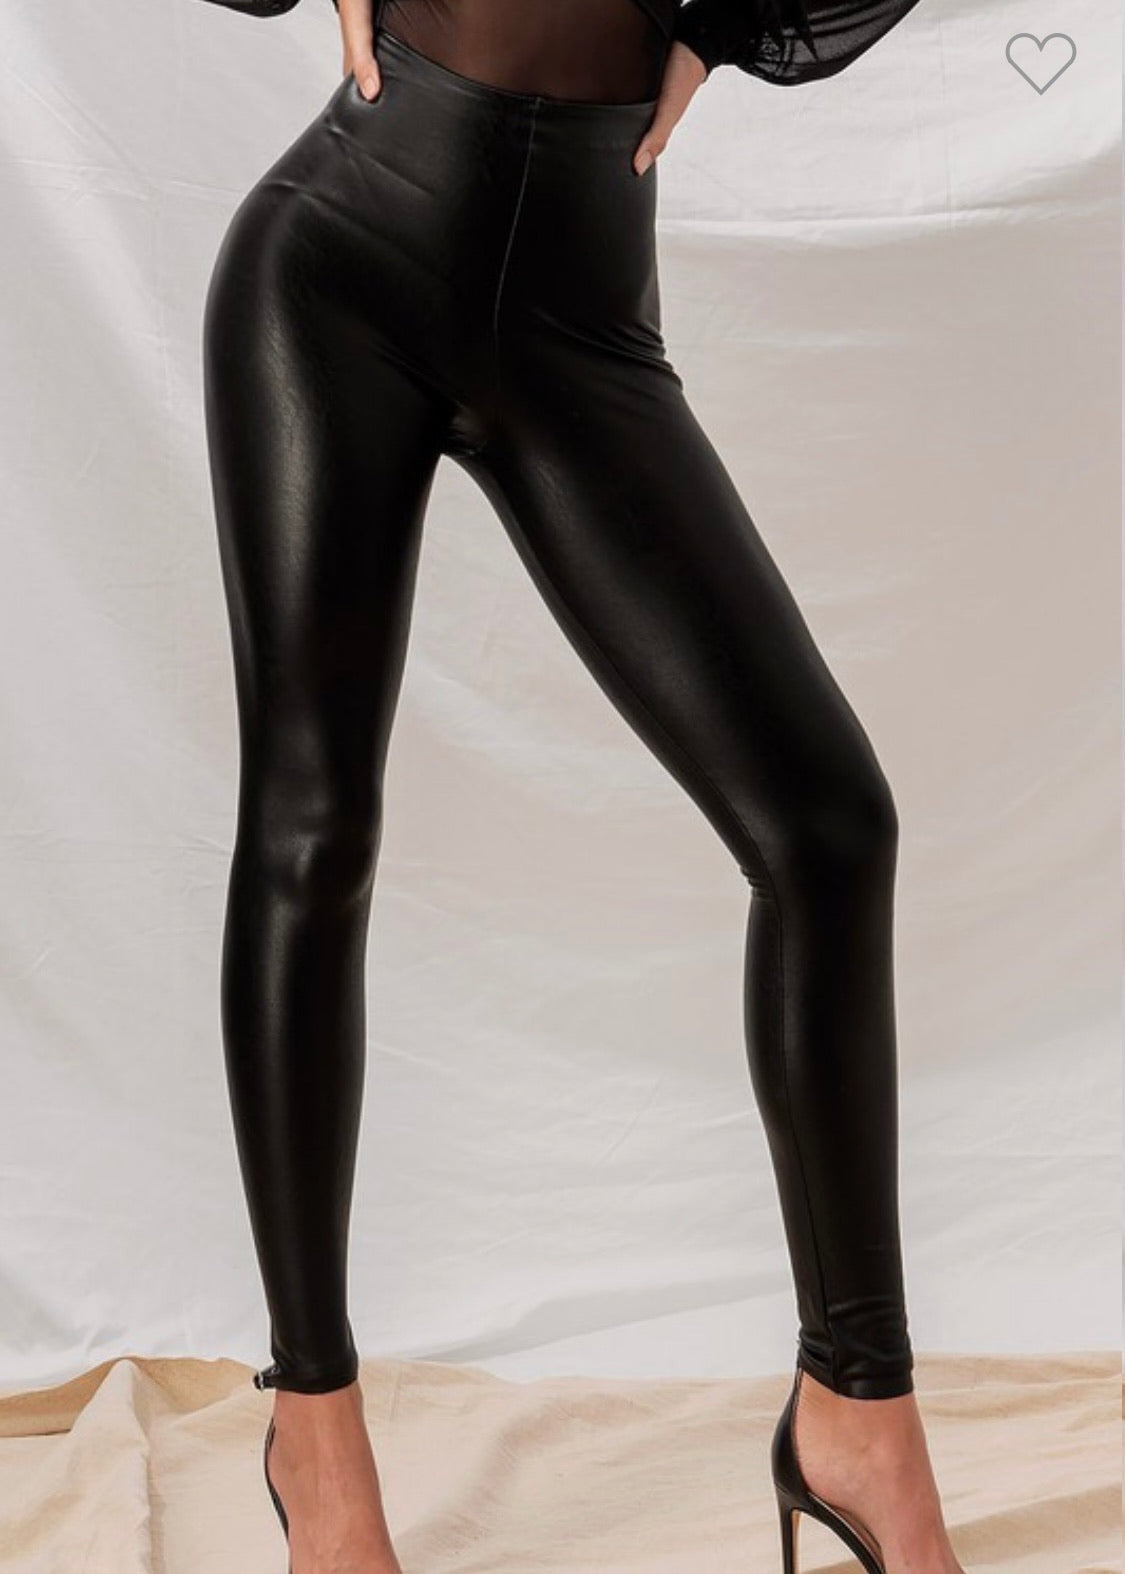 Play in Pleather Vegan leather leggings- lined